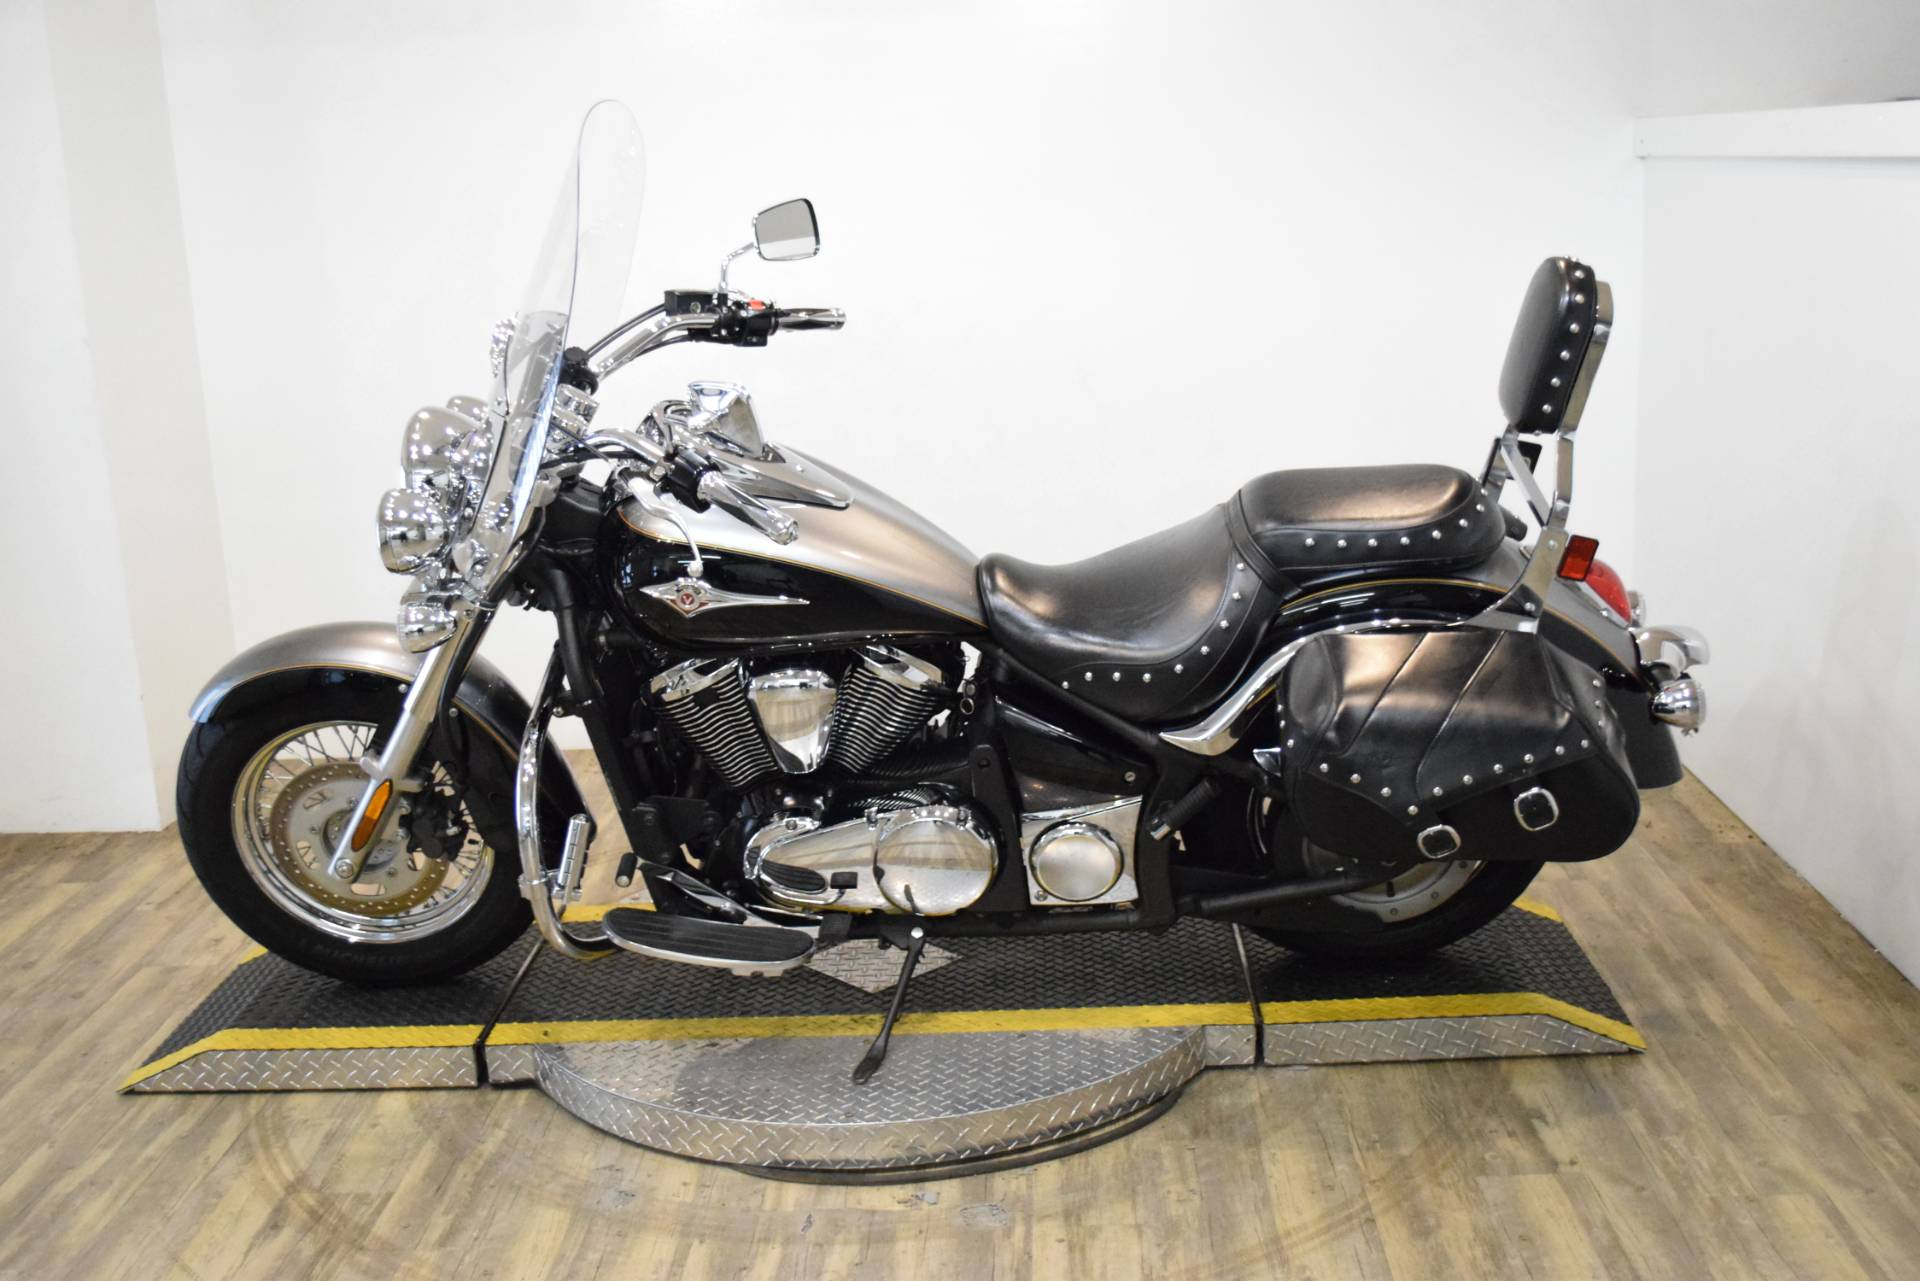 2012 Kawasaki Vulcan® 900 Classic LT in Wauconda, Illinois - Photo 17